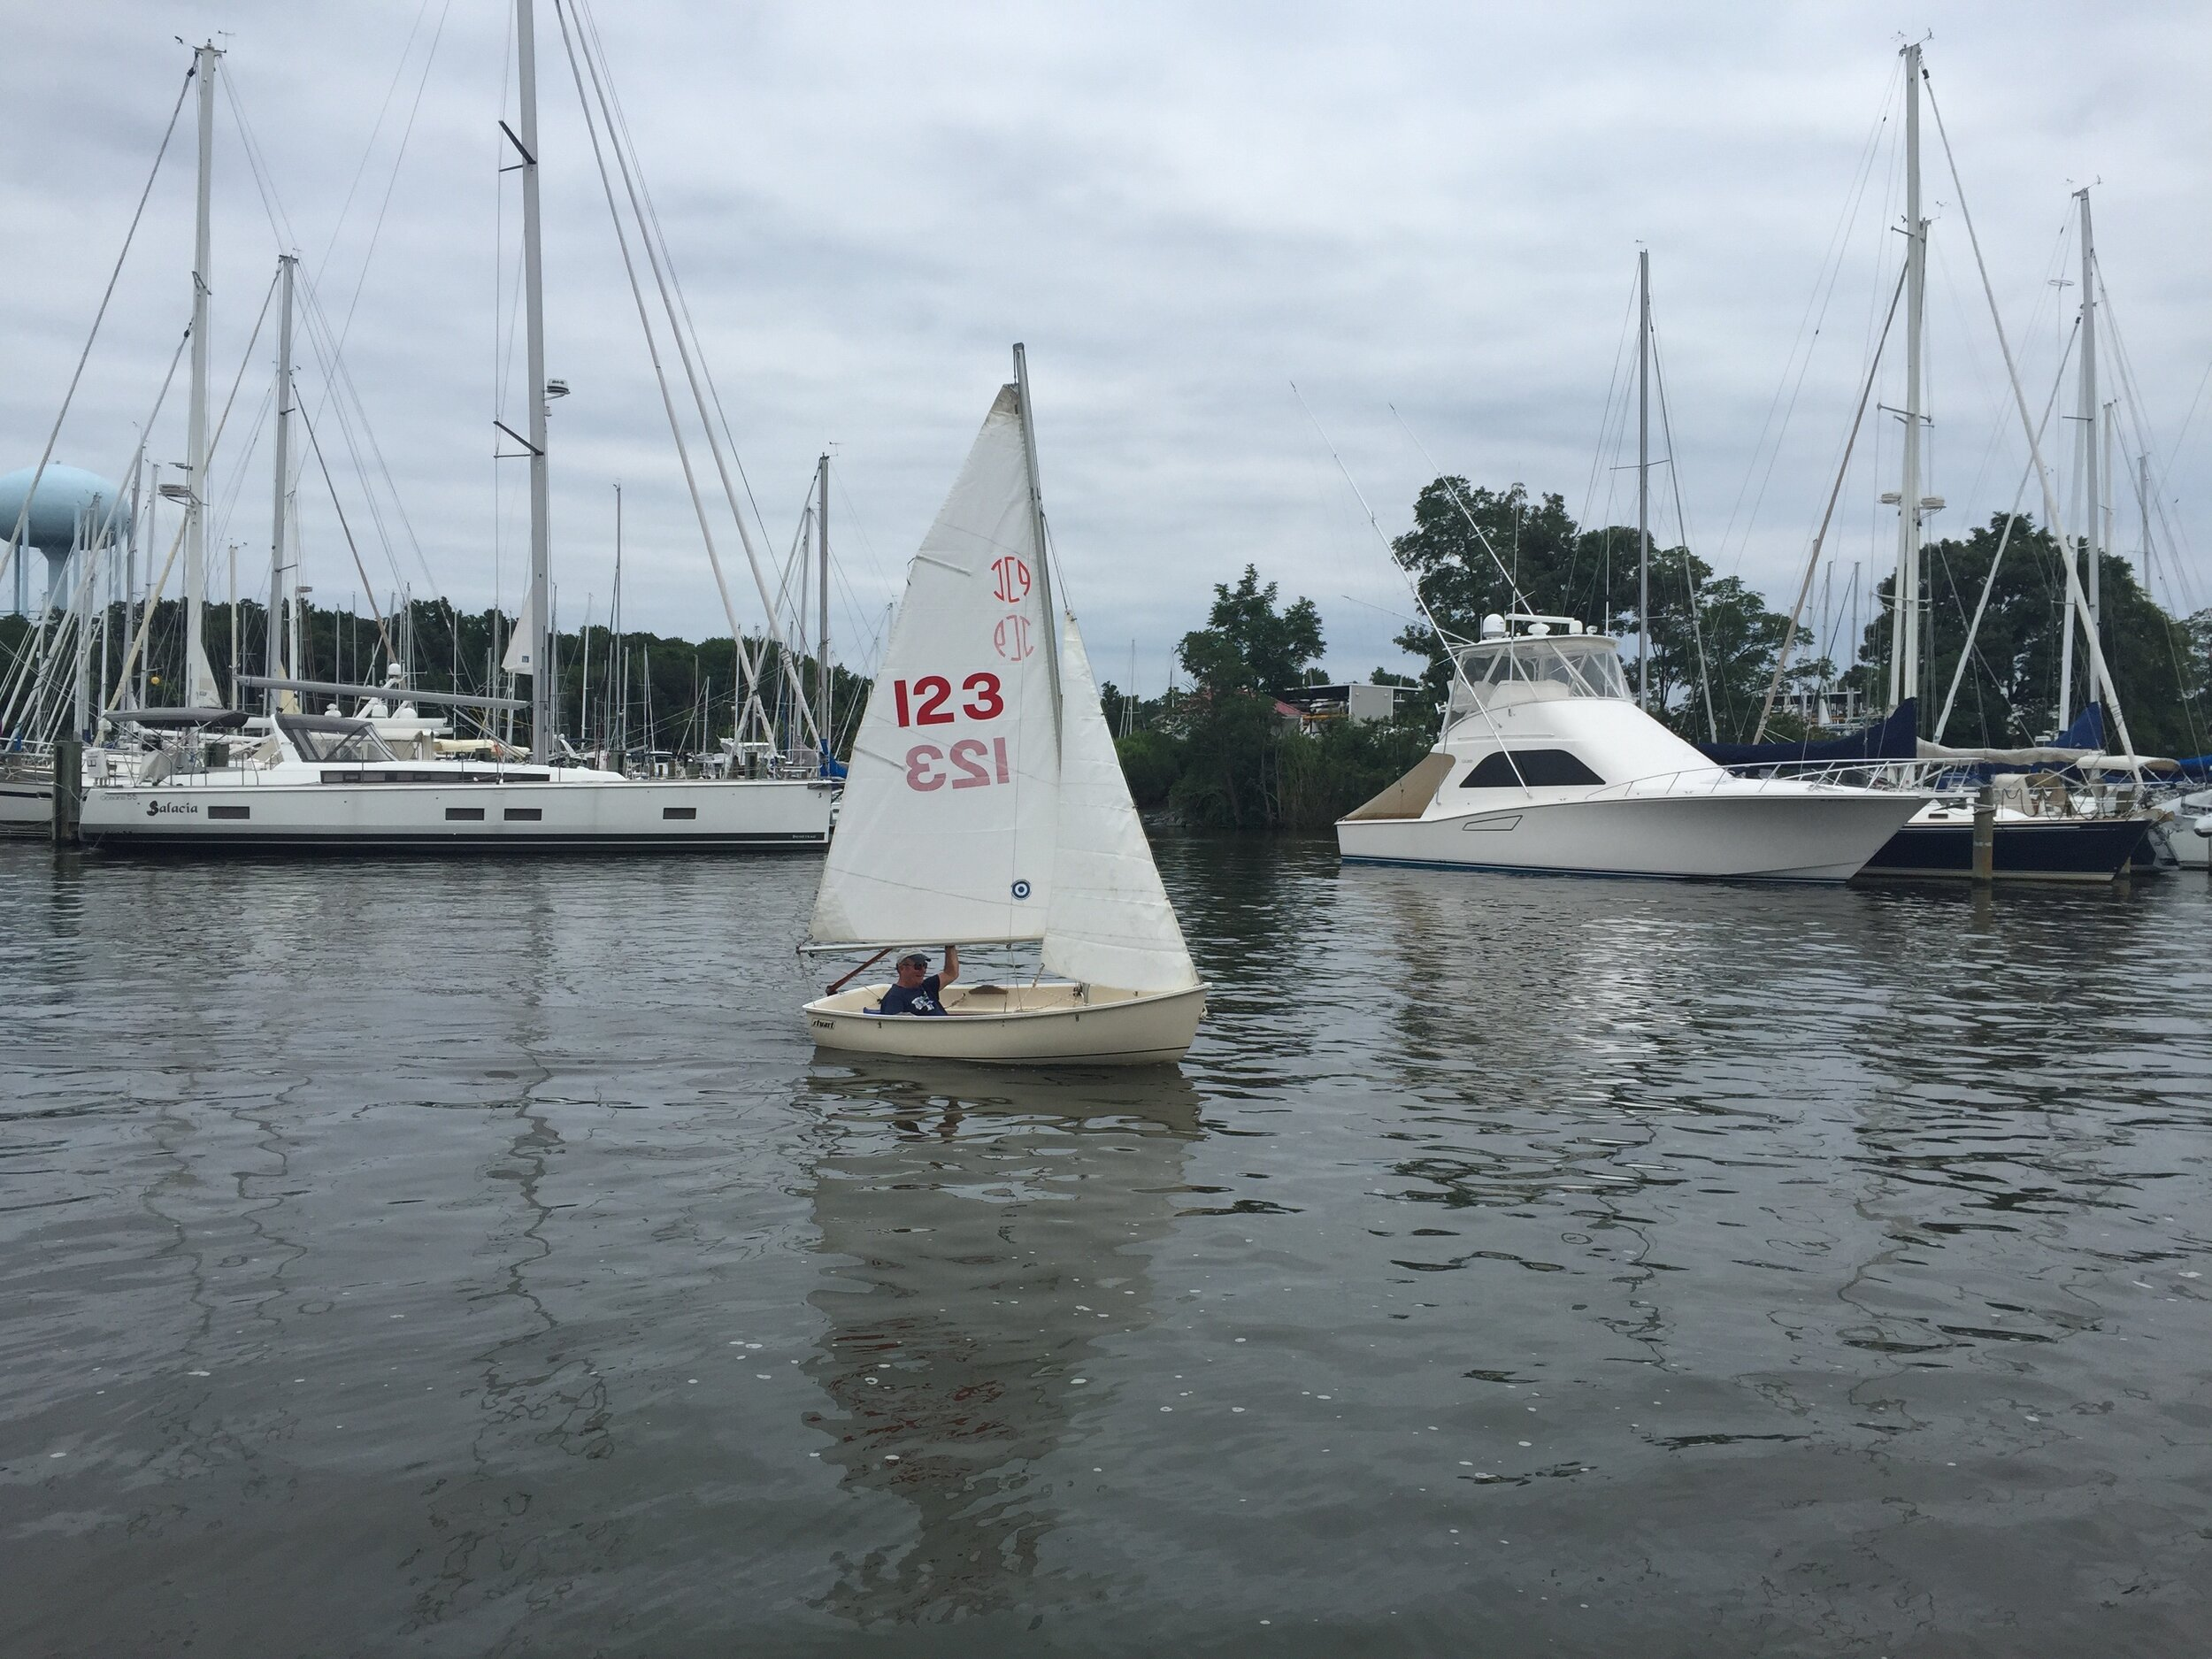 Exploring Annapolis Harbor